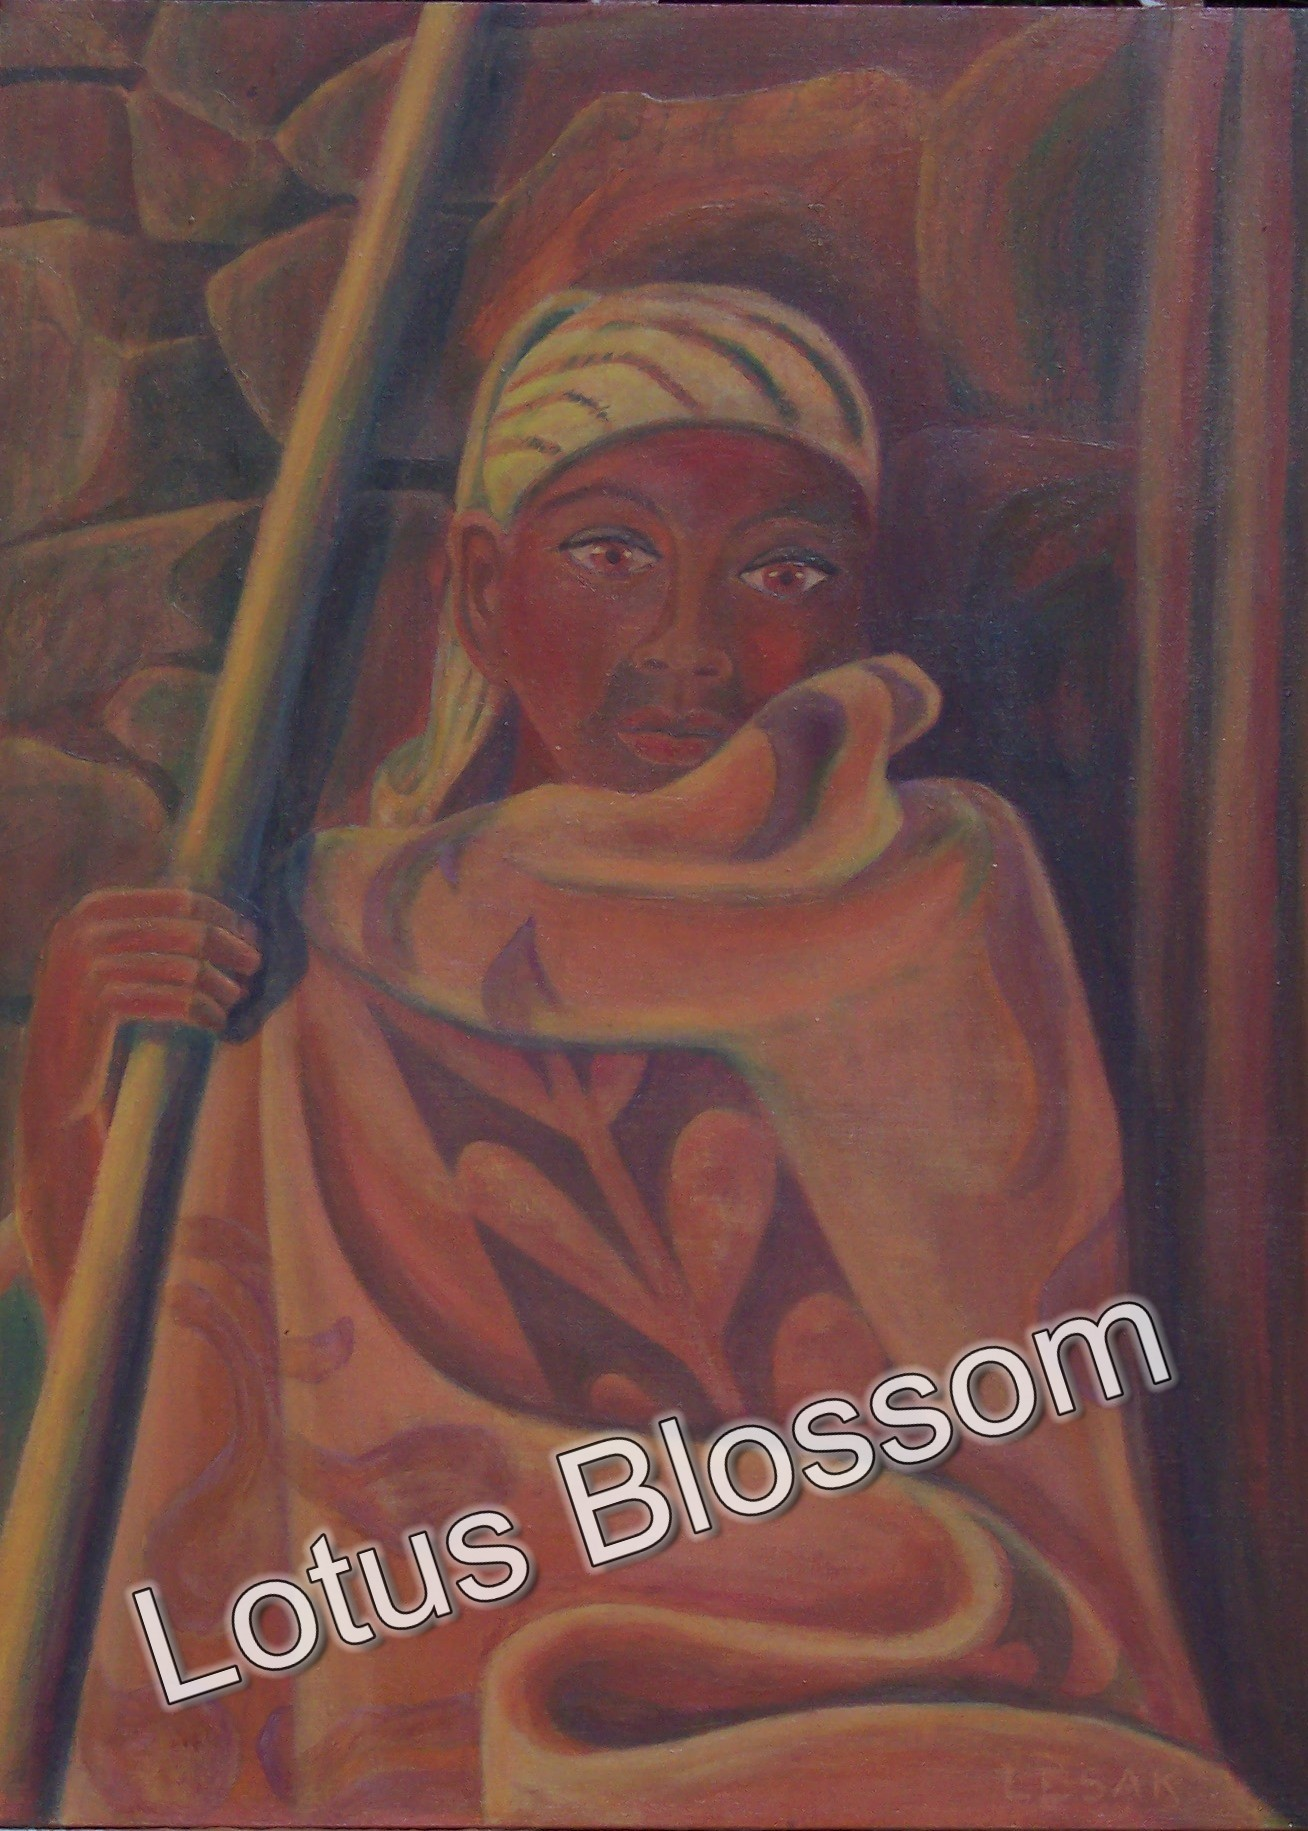 African Solitude by Lotus Blossom